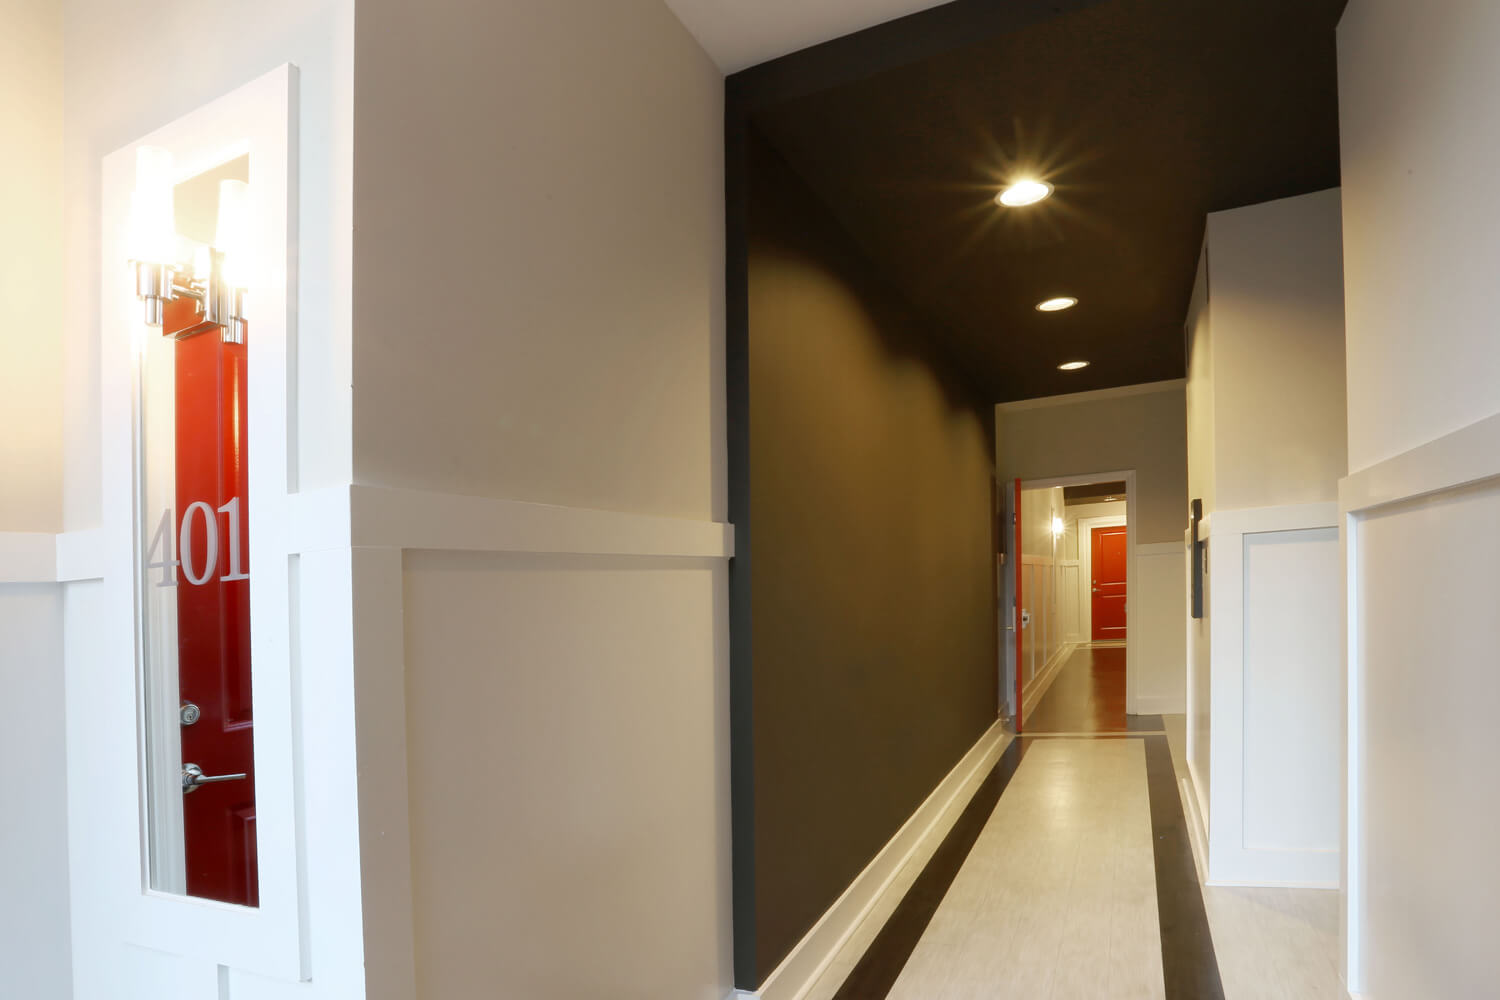 The 40 Four Building Designed by Foshee Architecture – Elevator Lobby